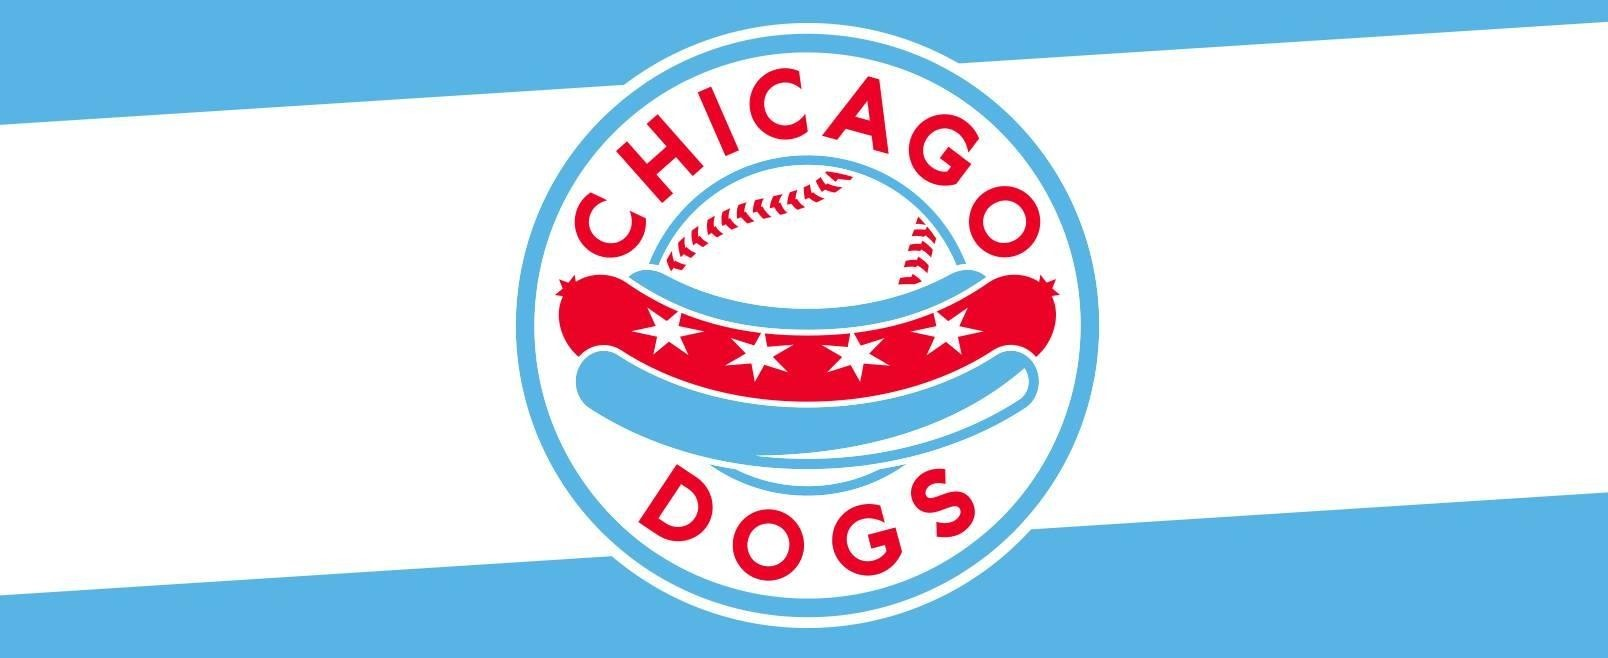 Email Join The Chicago Dogs For Autism Awareness Night Autism Speaks